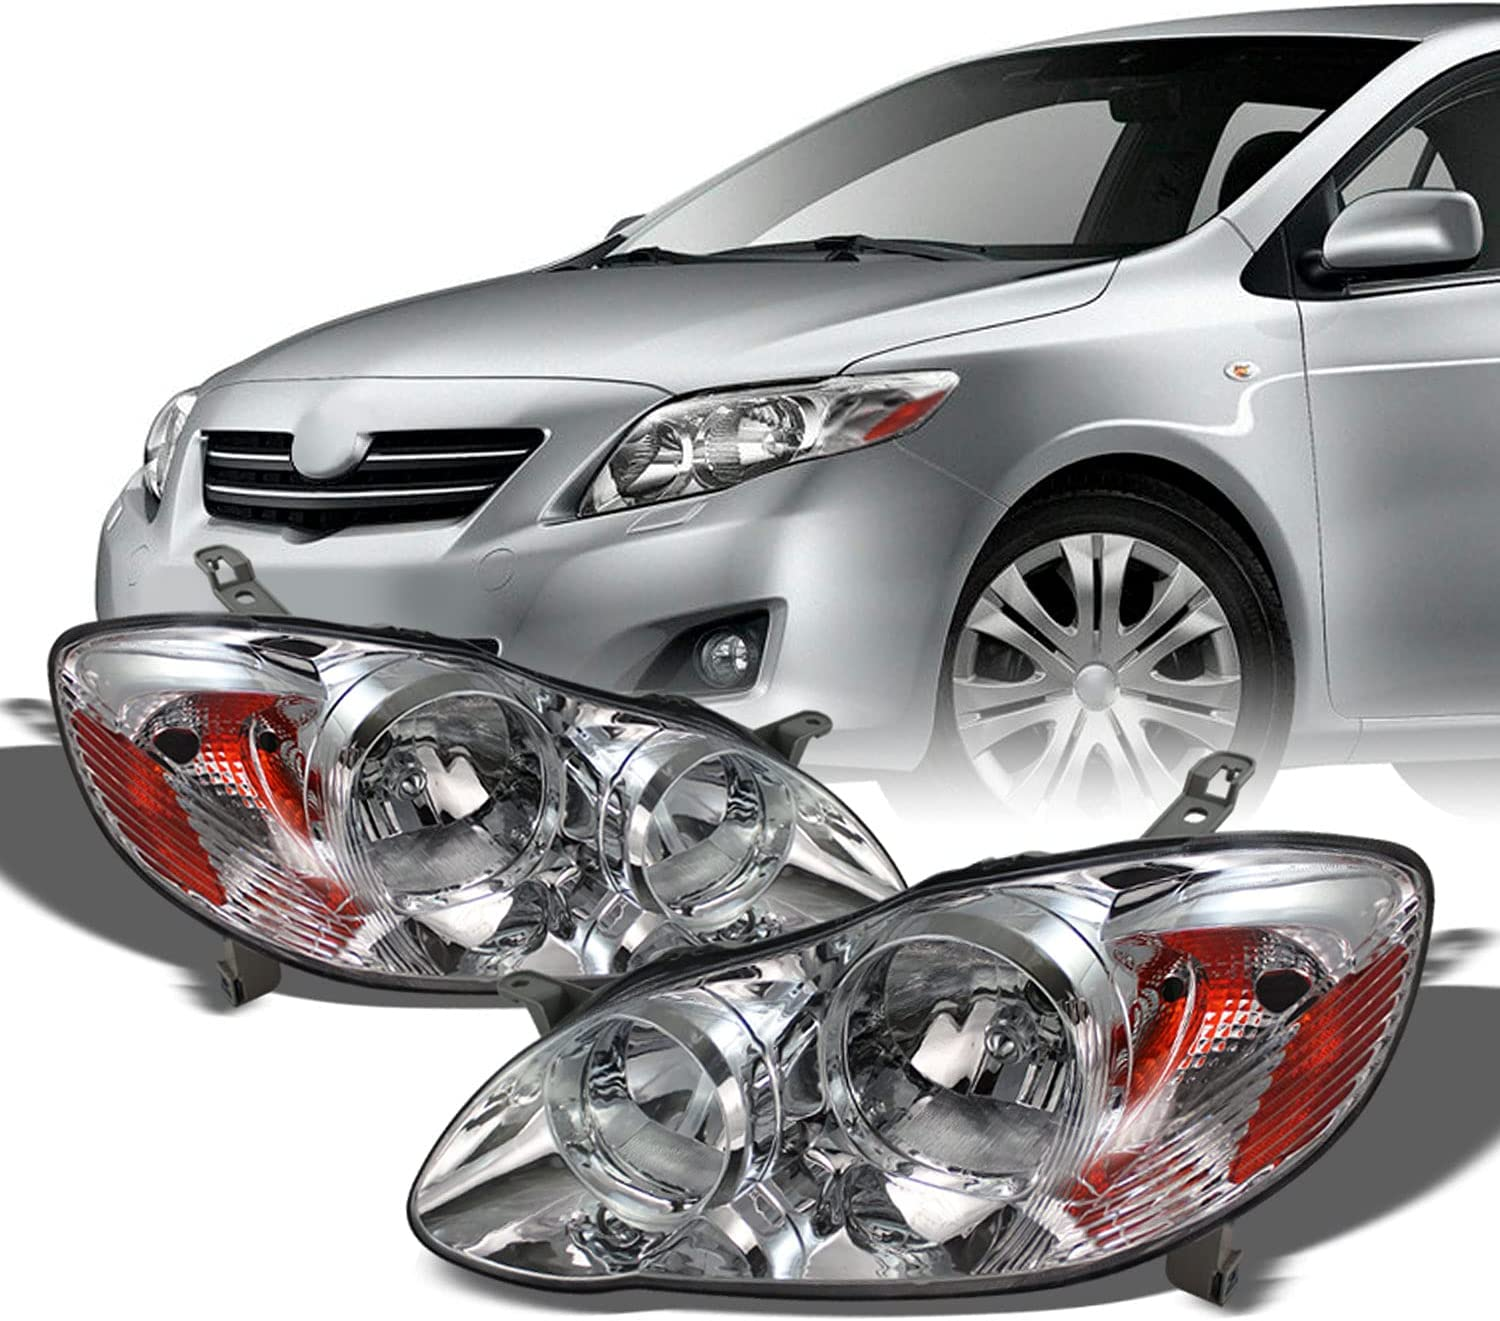 For 03-08 Toyota Corolla Headlights Daily bargain sale Repl Direct Lamps Front Head Max 58% OFF